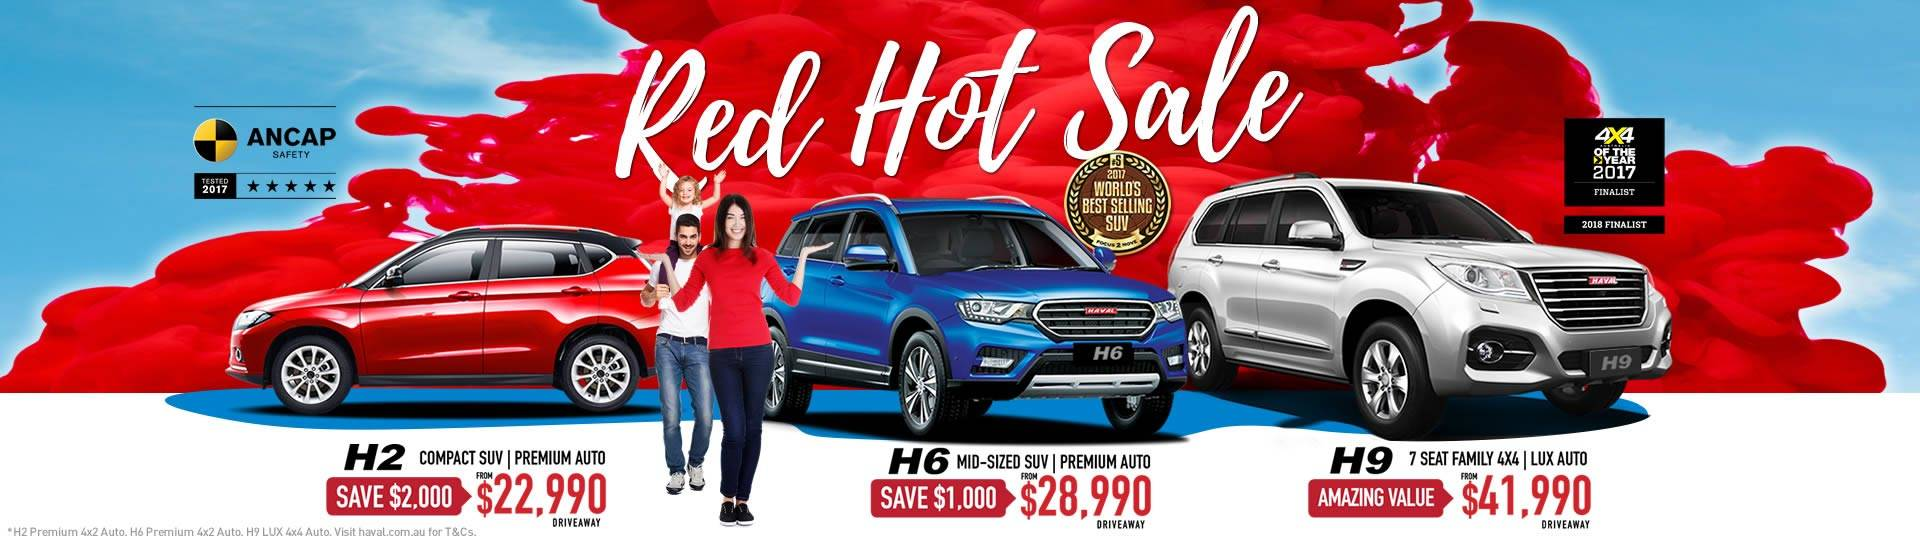 HAVAL Red Hot Sale